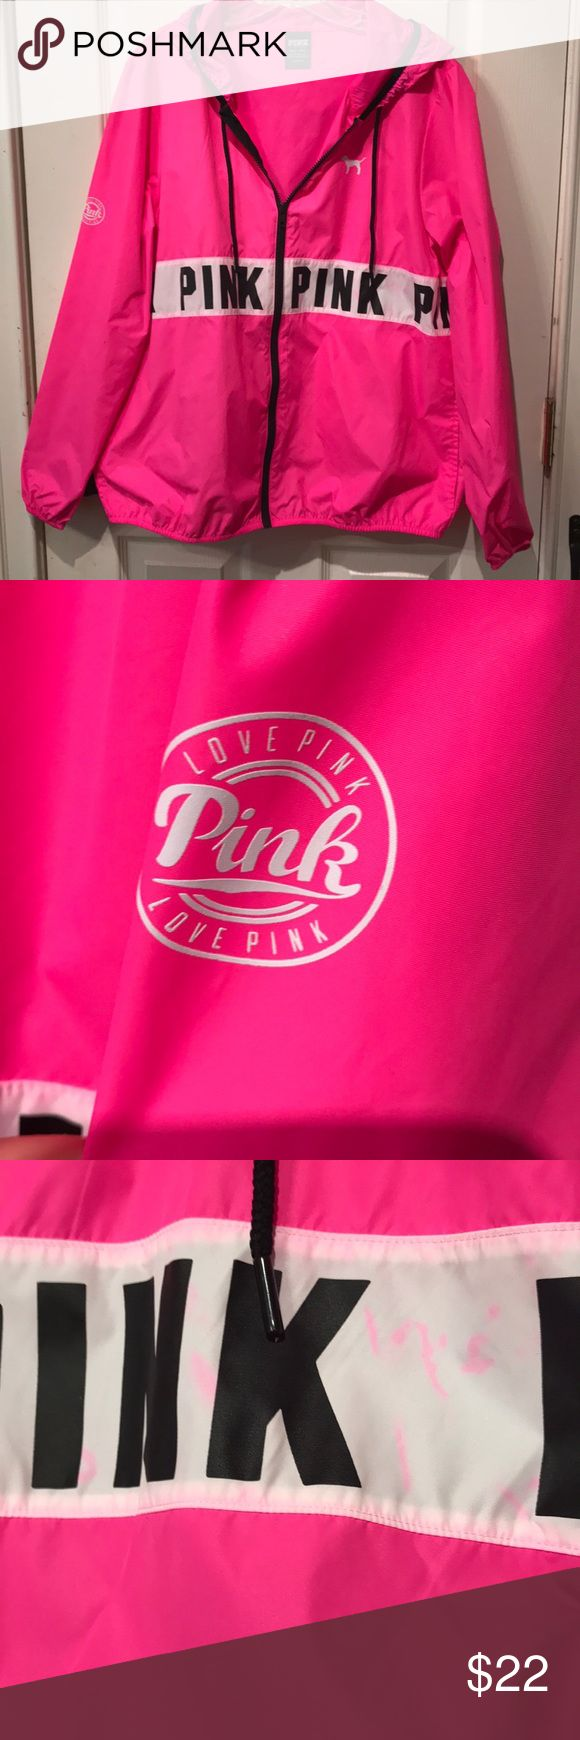 BS PINK rain parka Some color transfer of pink to the white band as shown in photos. There are also some random dots on the sleeve. Even with these flaws this jacket is still too pretty to throw away!  The color is fabulous! Make an offer! Victoria's Secret Jackets & Coats